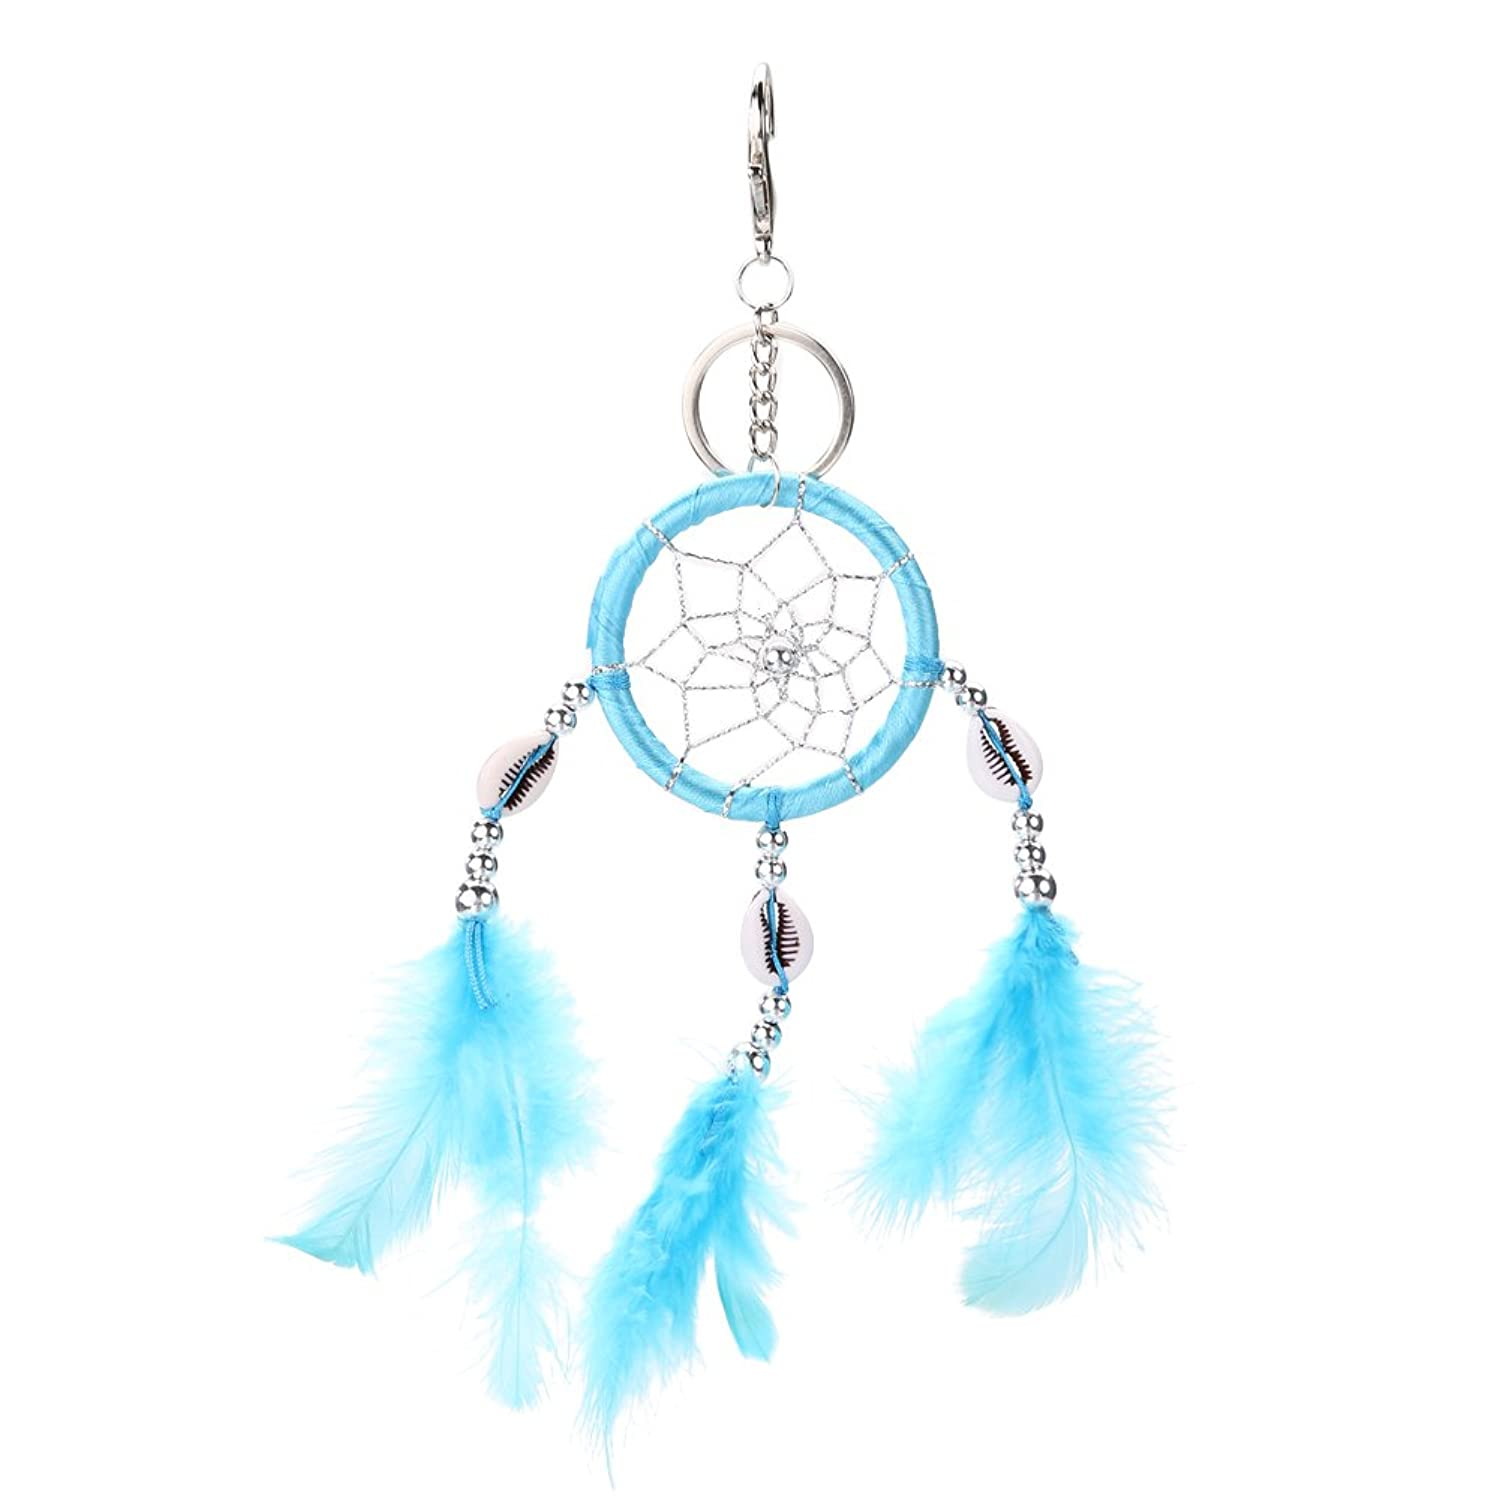 Jocestyle Womens Girls Lucky Dream Catcher Charms Fancy Key Chain Ring Keychain Keyrings Handbag Bag Accessories Pendant